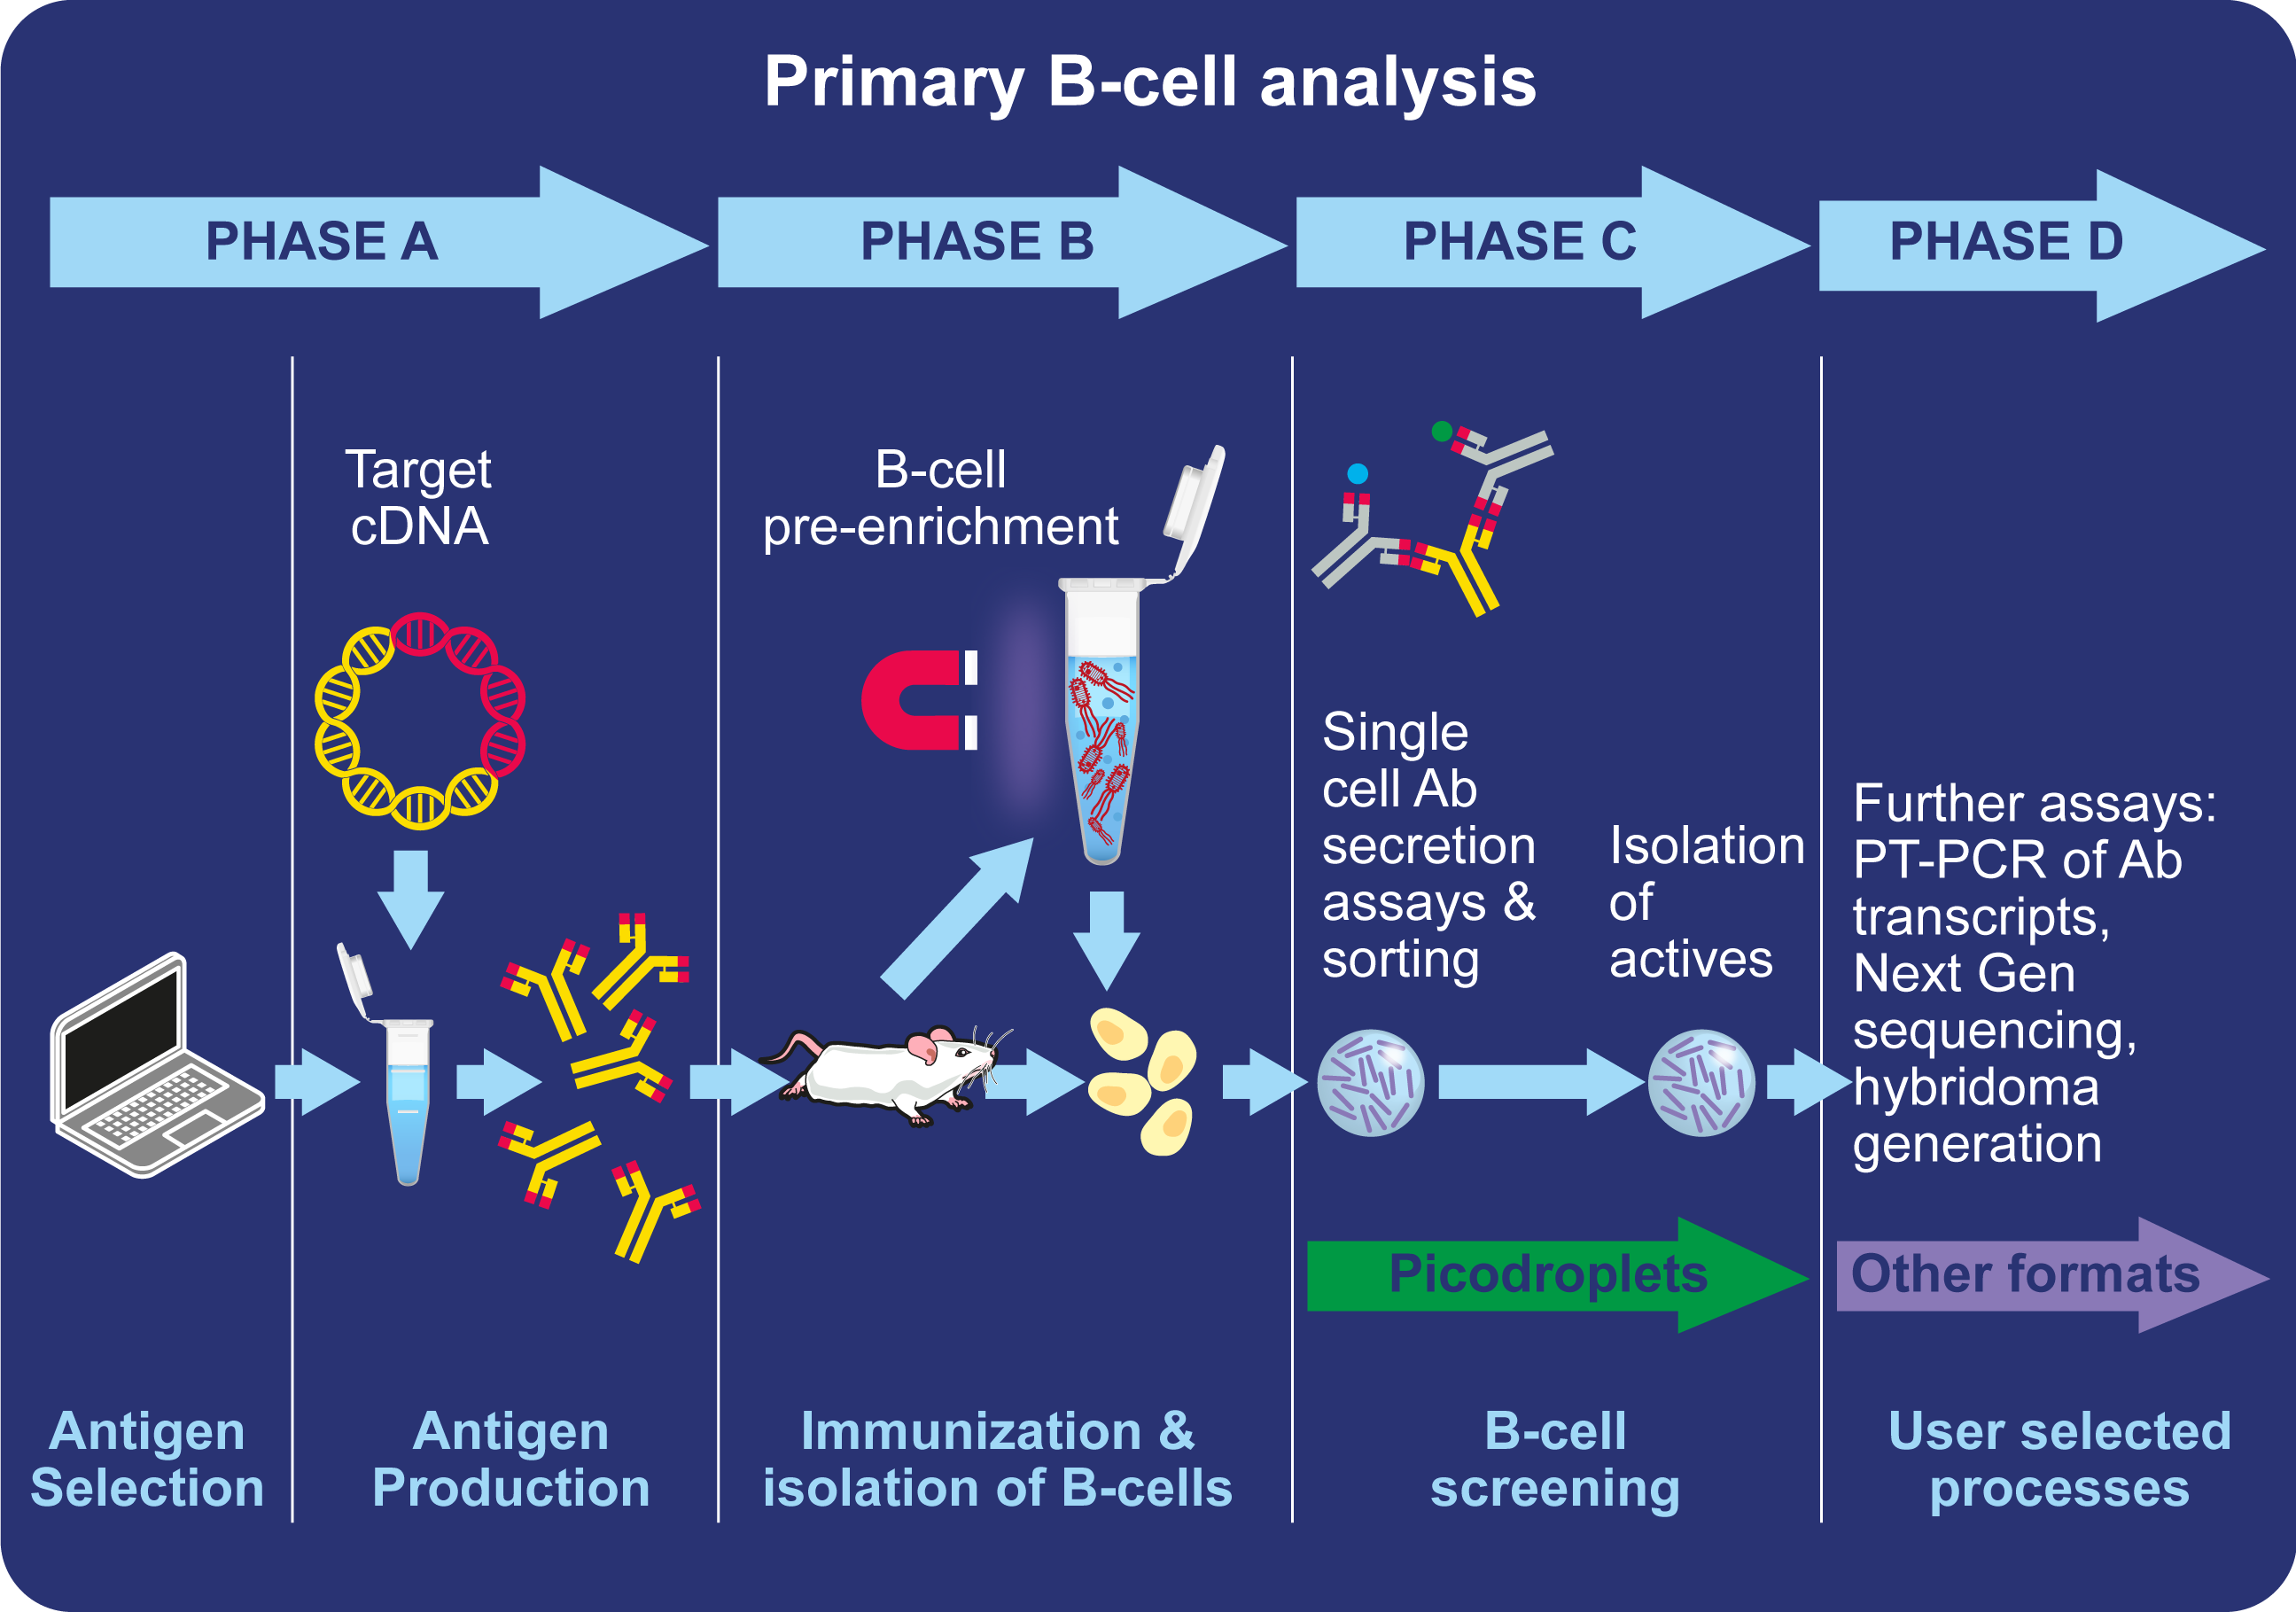 Primary B cell analysis workflow